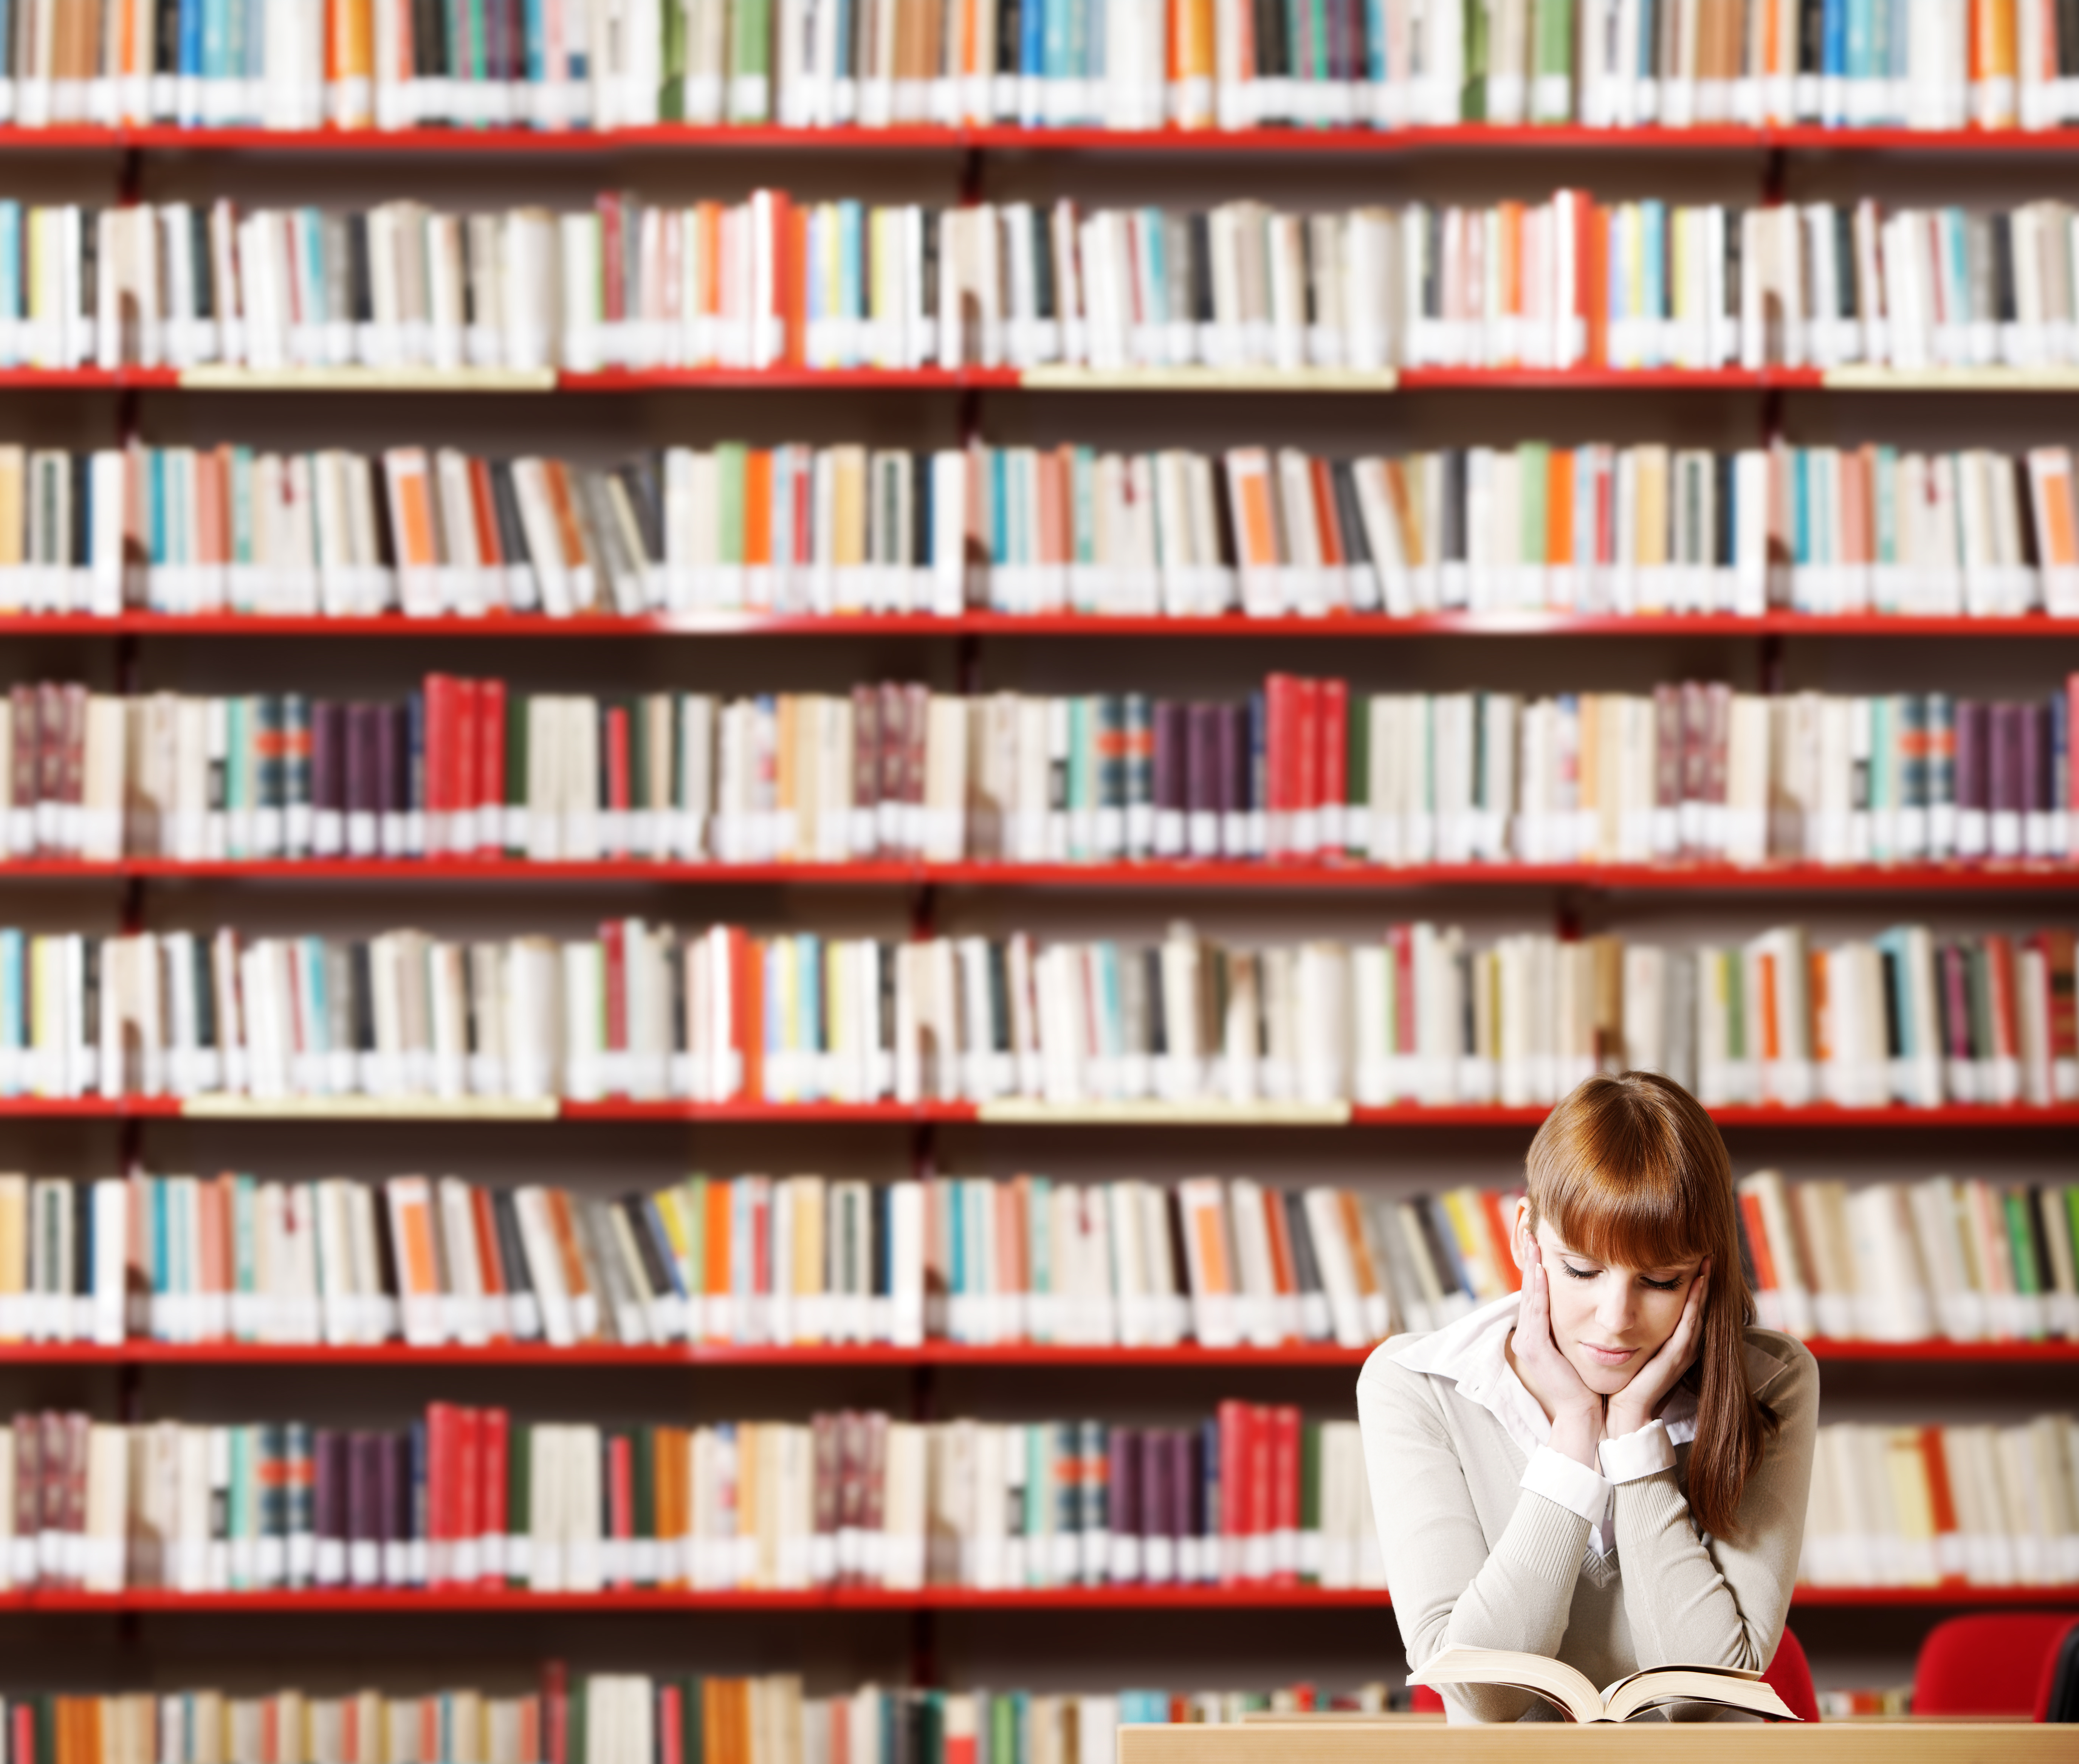 books and a girl readying